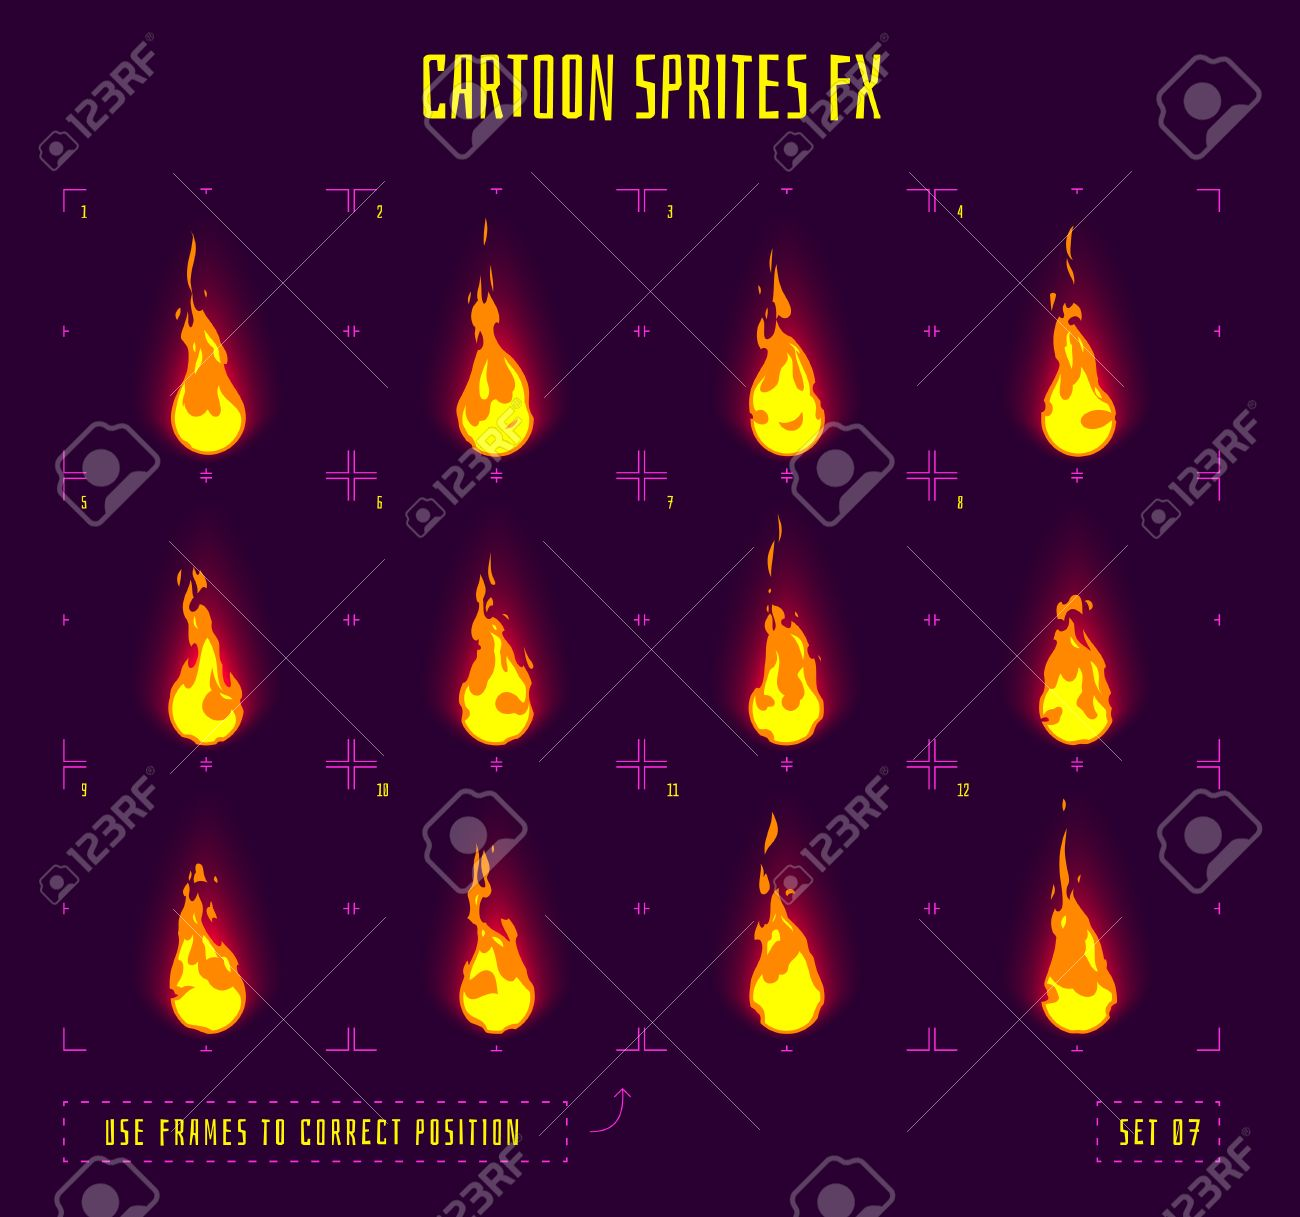 Fire sprites or animation frames icons. Use in game development, mobile games or motion graphic. Vector illustration. - 58783158